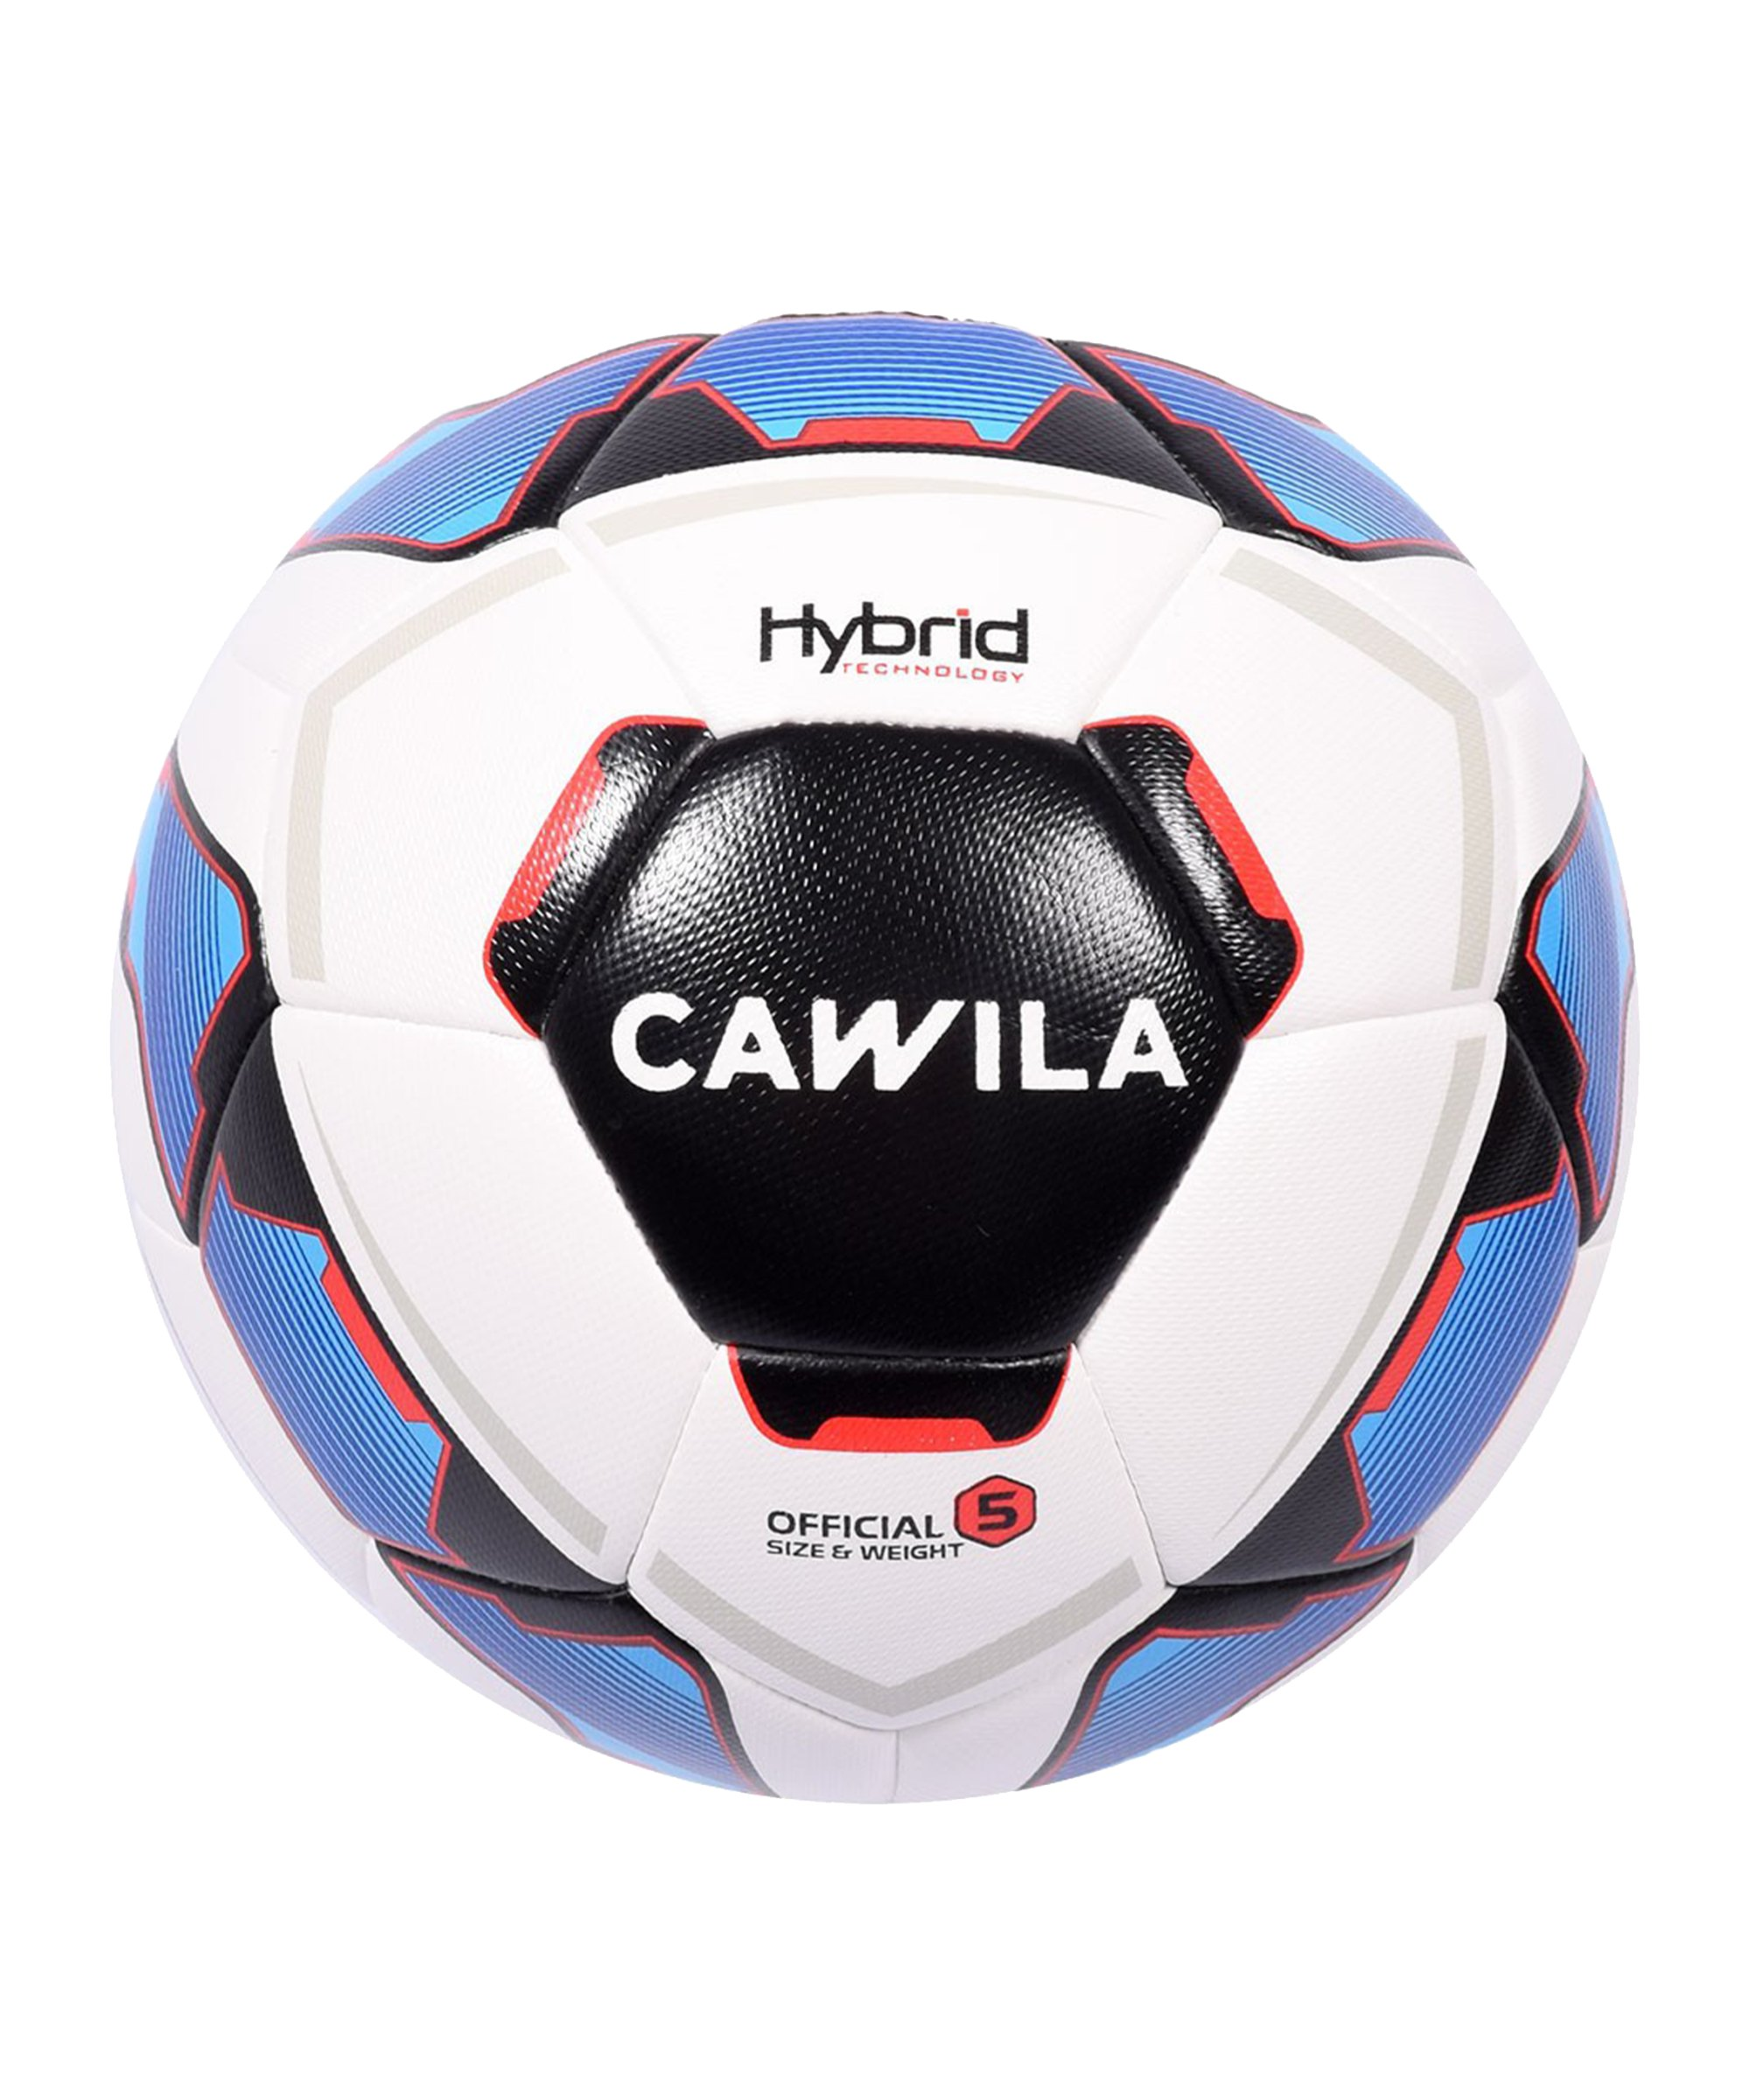 Cawila Fussball MISSION HYBRID Fairtrade 5 - weiss